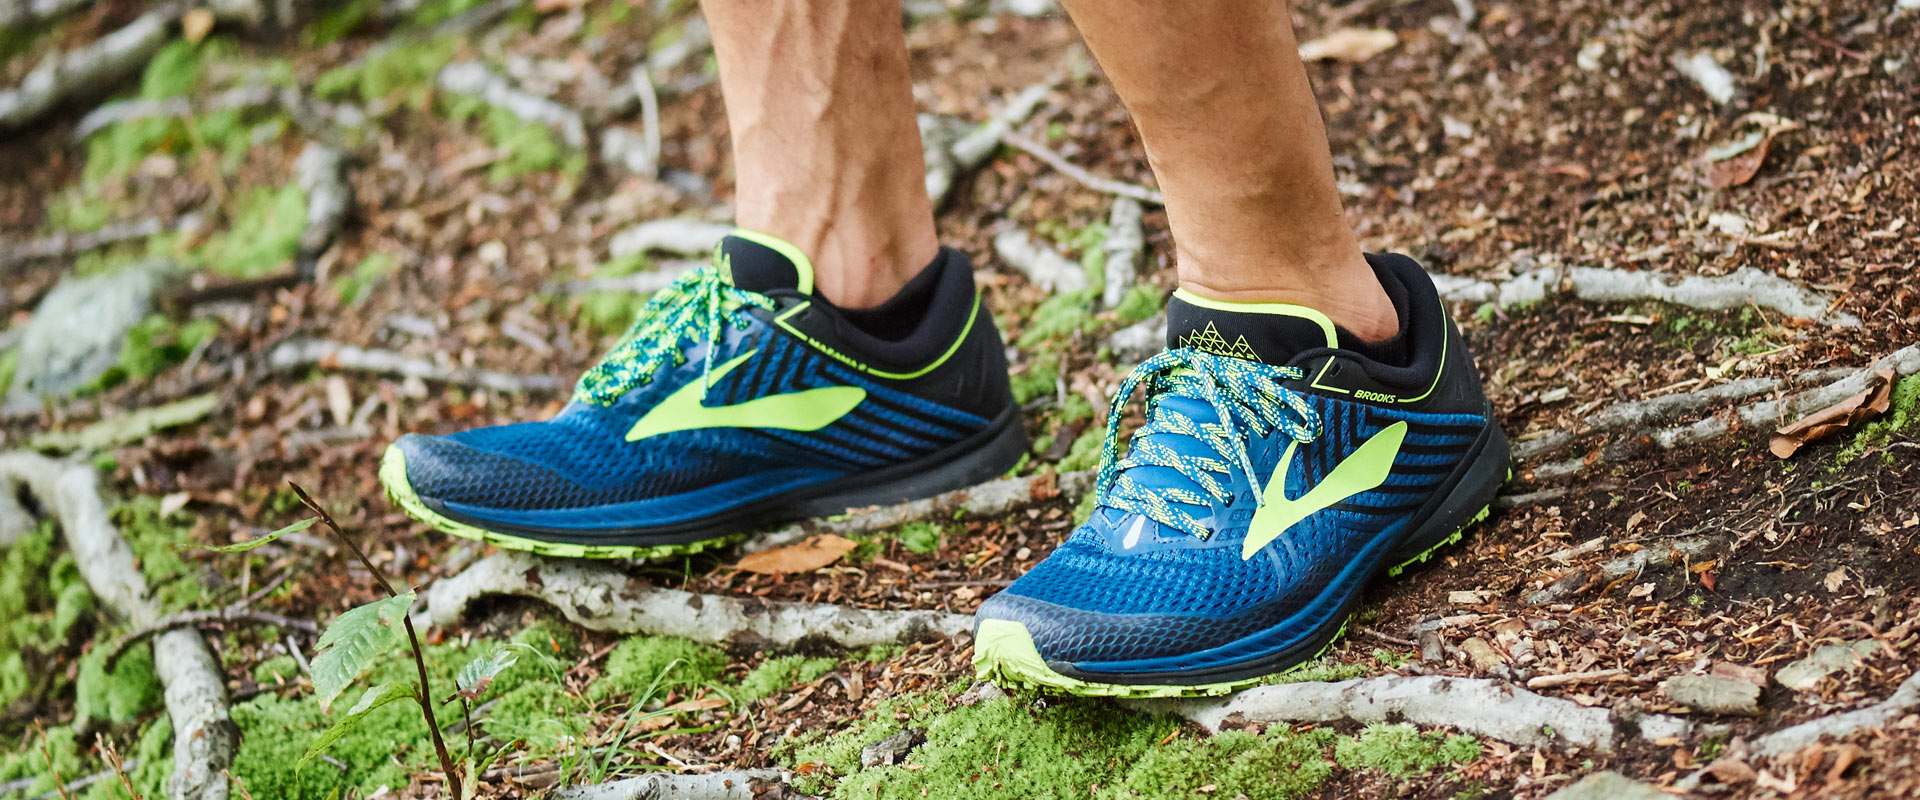 Best Low Price Running Shoes